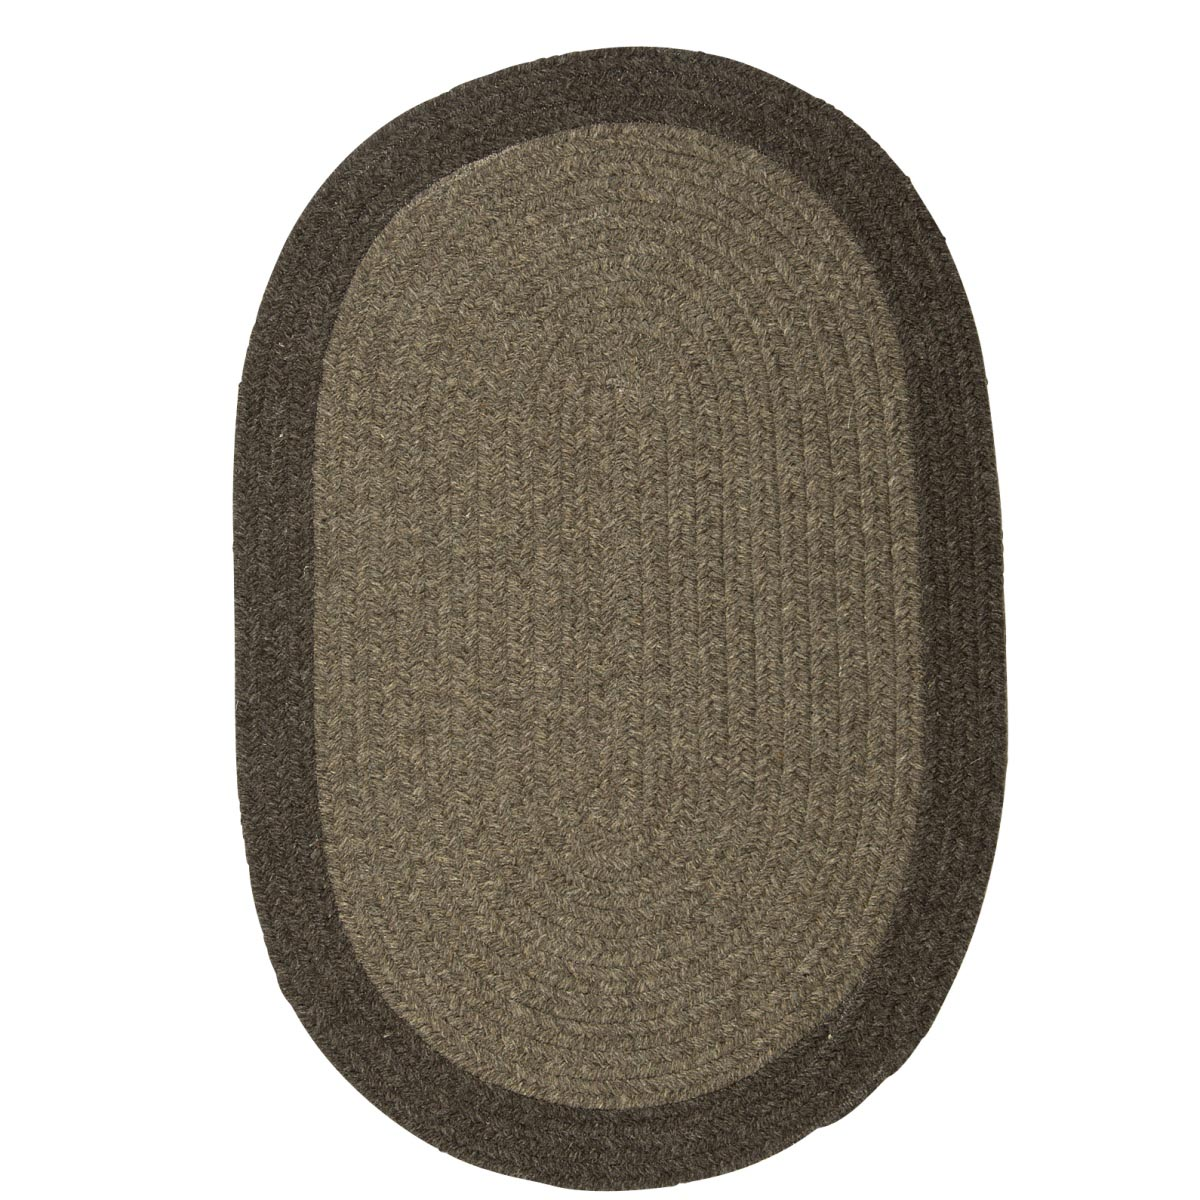 Hudson Brown Wool Braided Oval Rugs